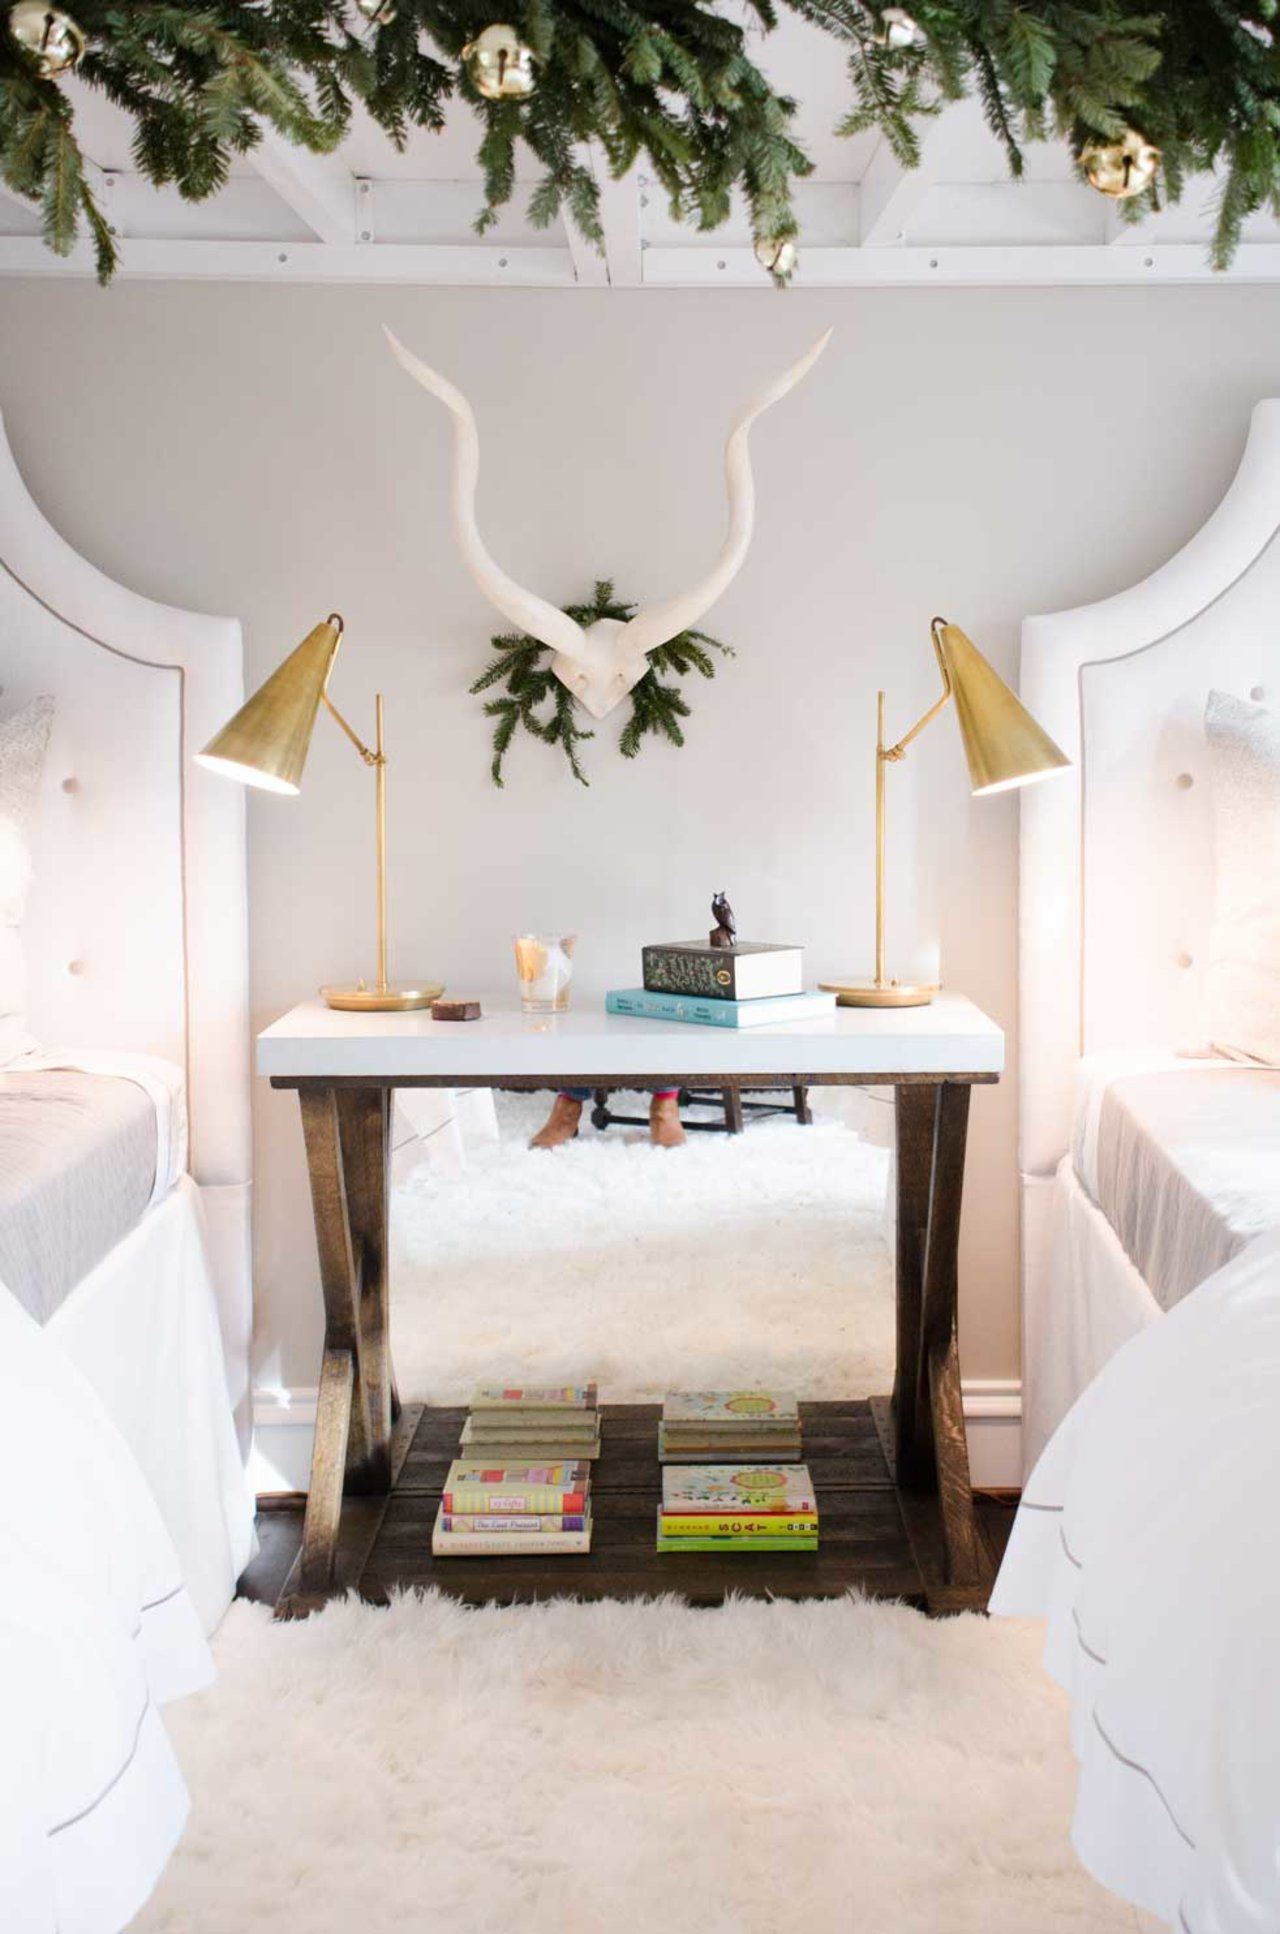 Modern brass bedside lamps, antlers, and twin beds - Gorgeous Christmas decorations at elegant Home for Holidays showhouse in Atlanta - Hello Lovely Studio